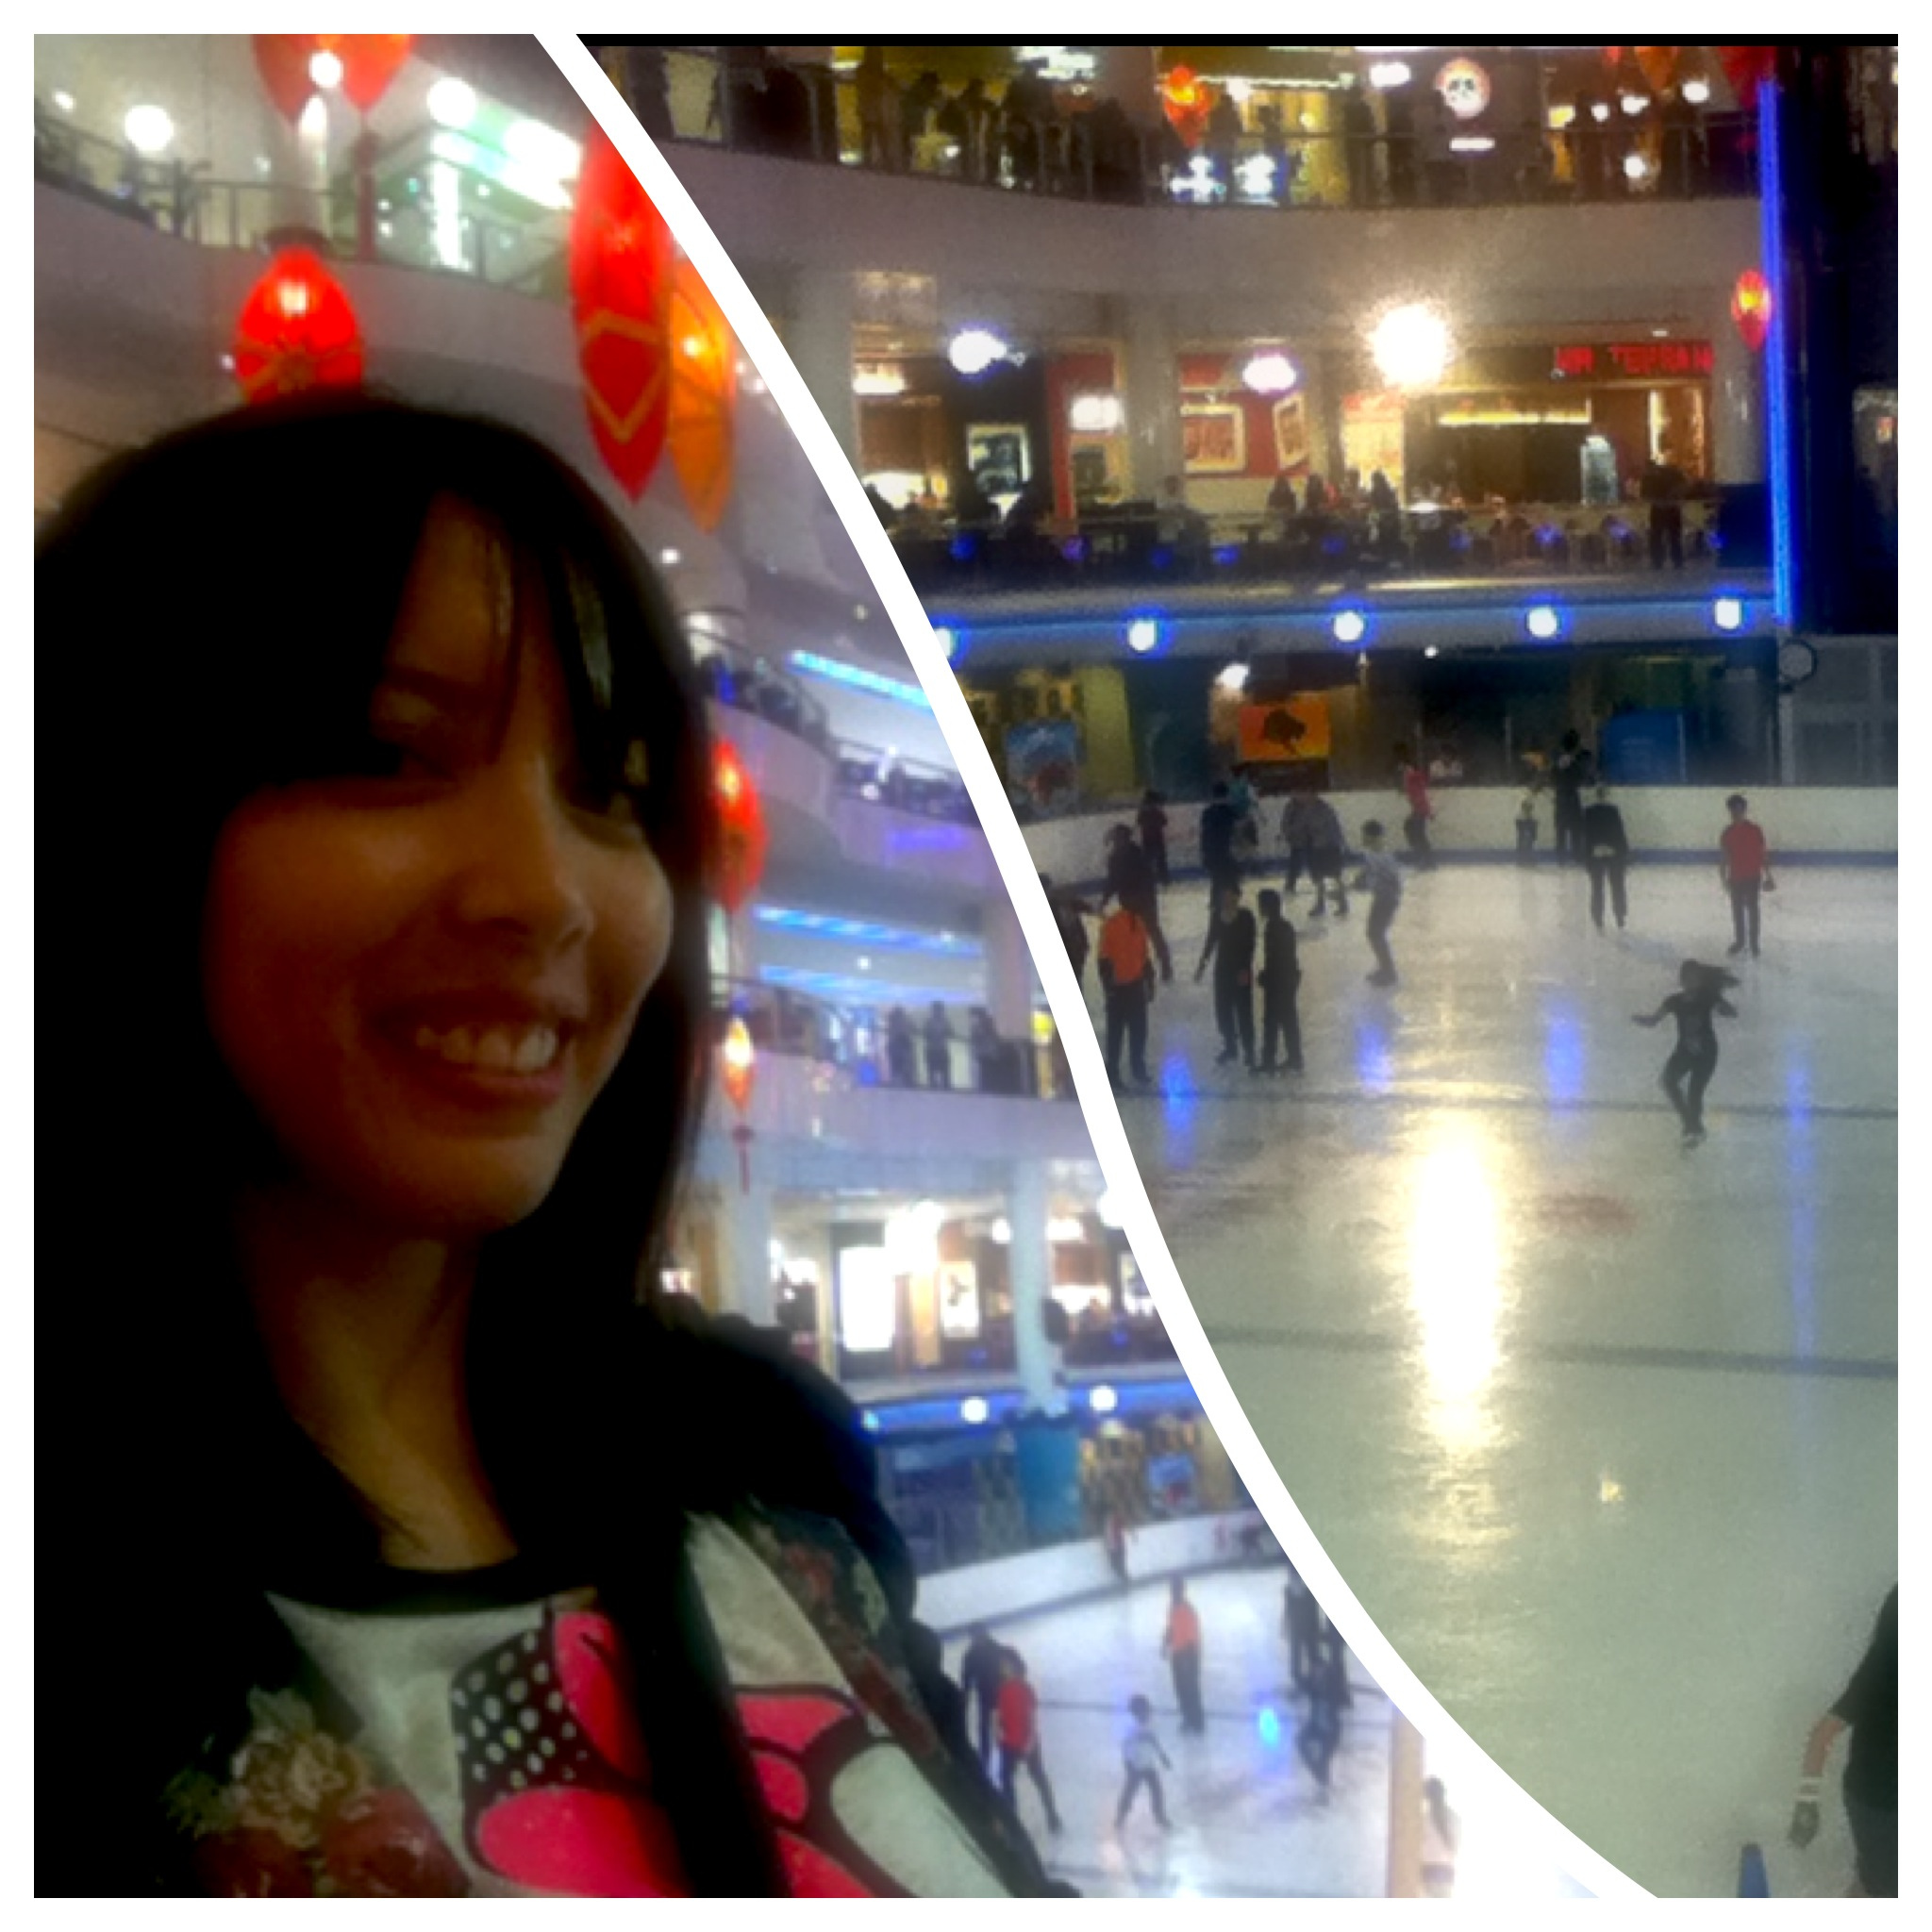 Sunway Pyramid's ice skating rink